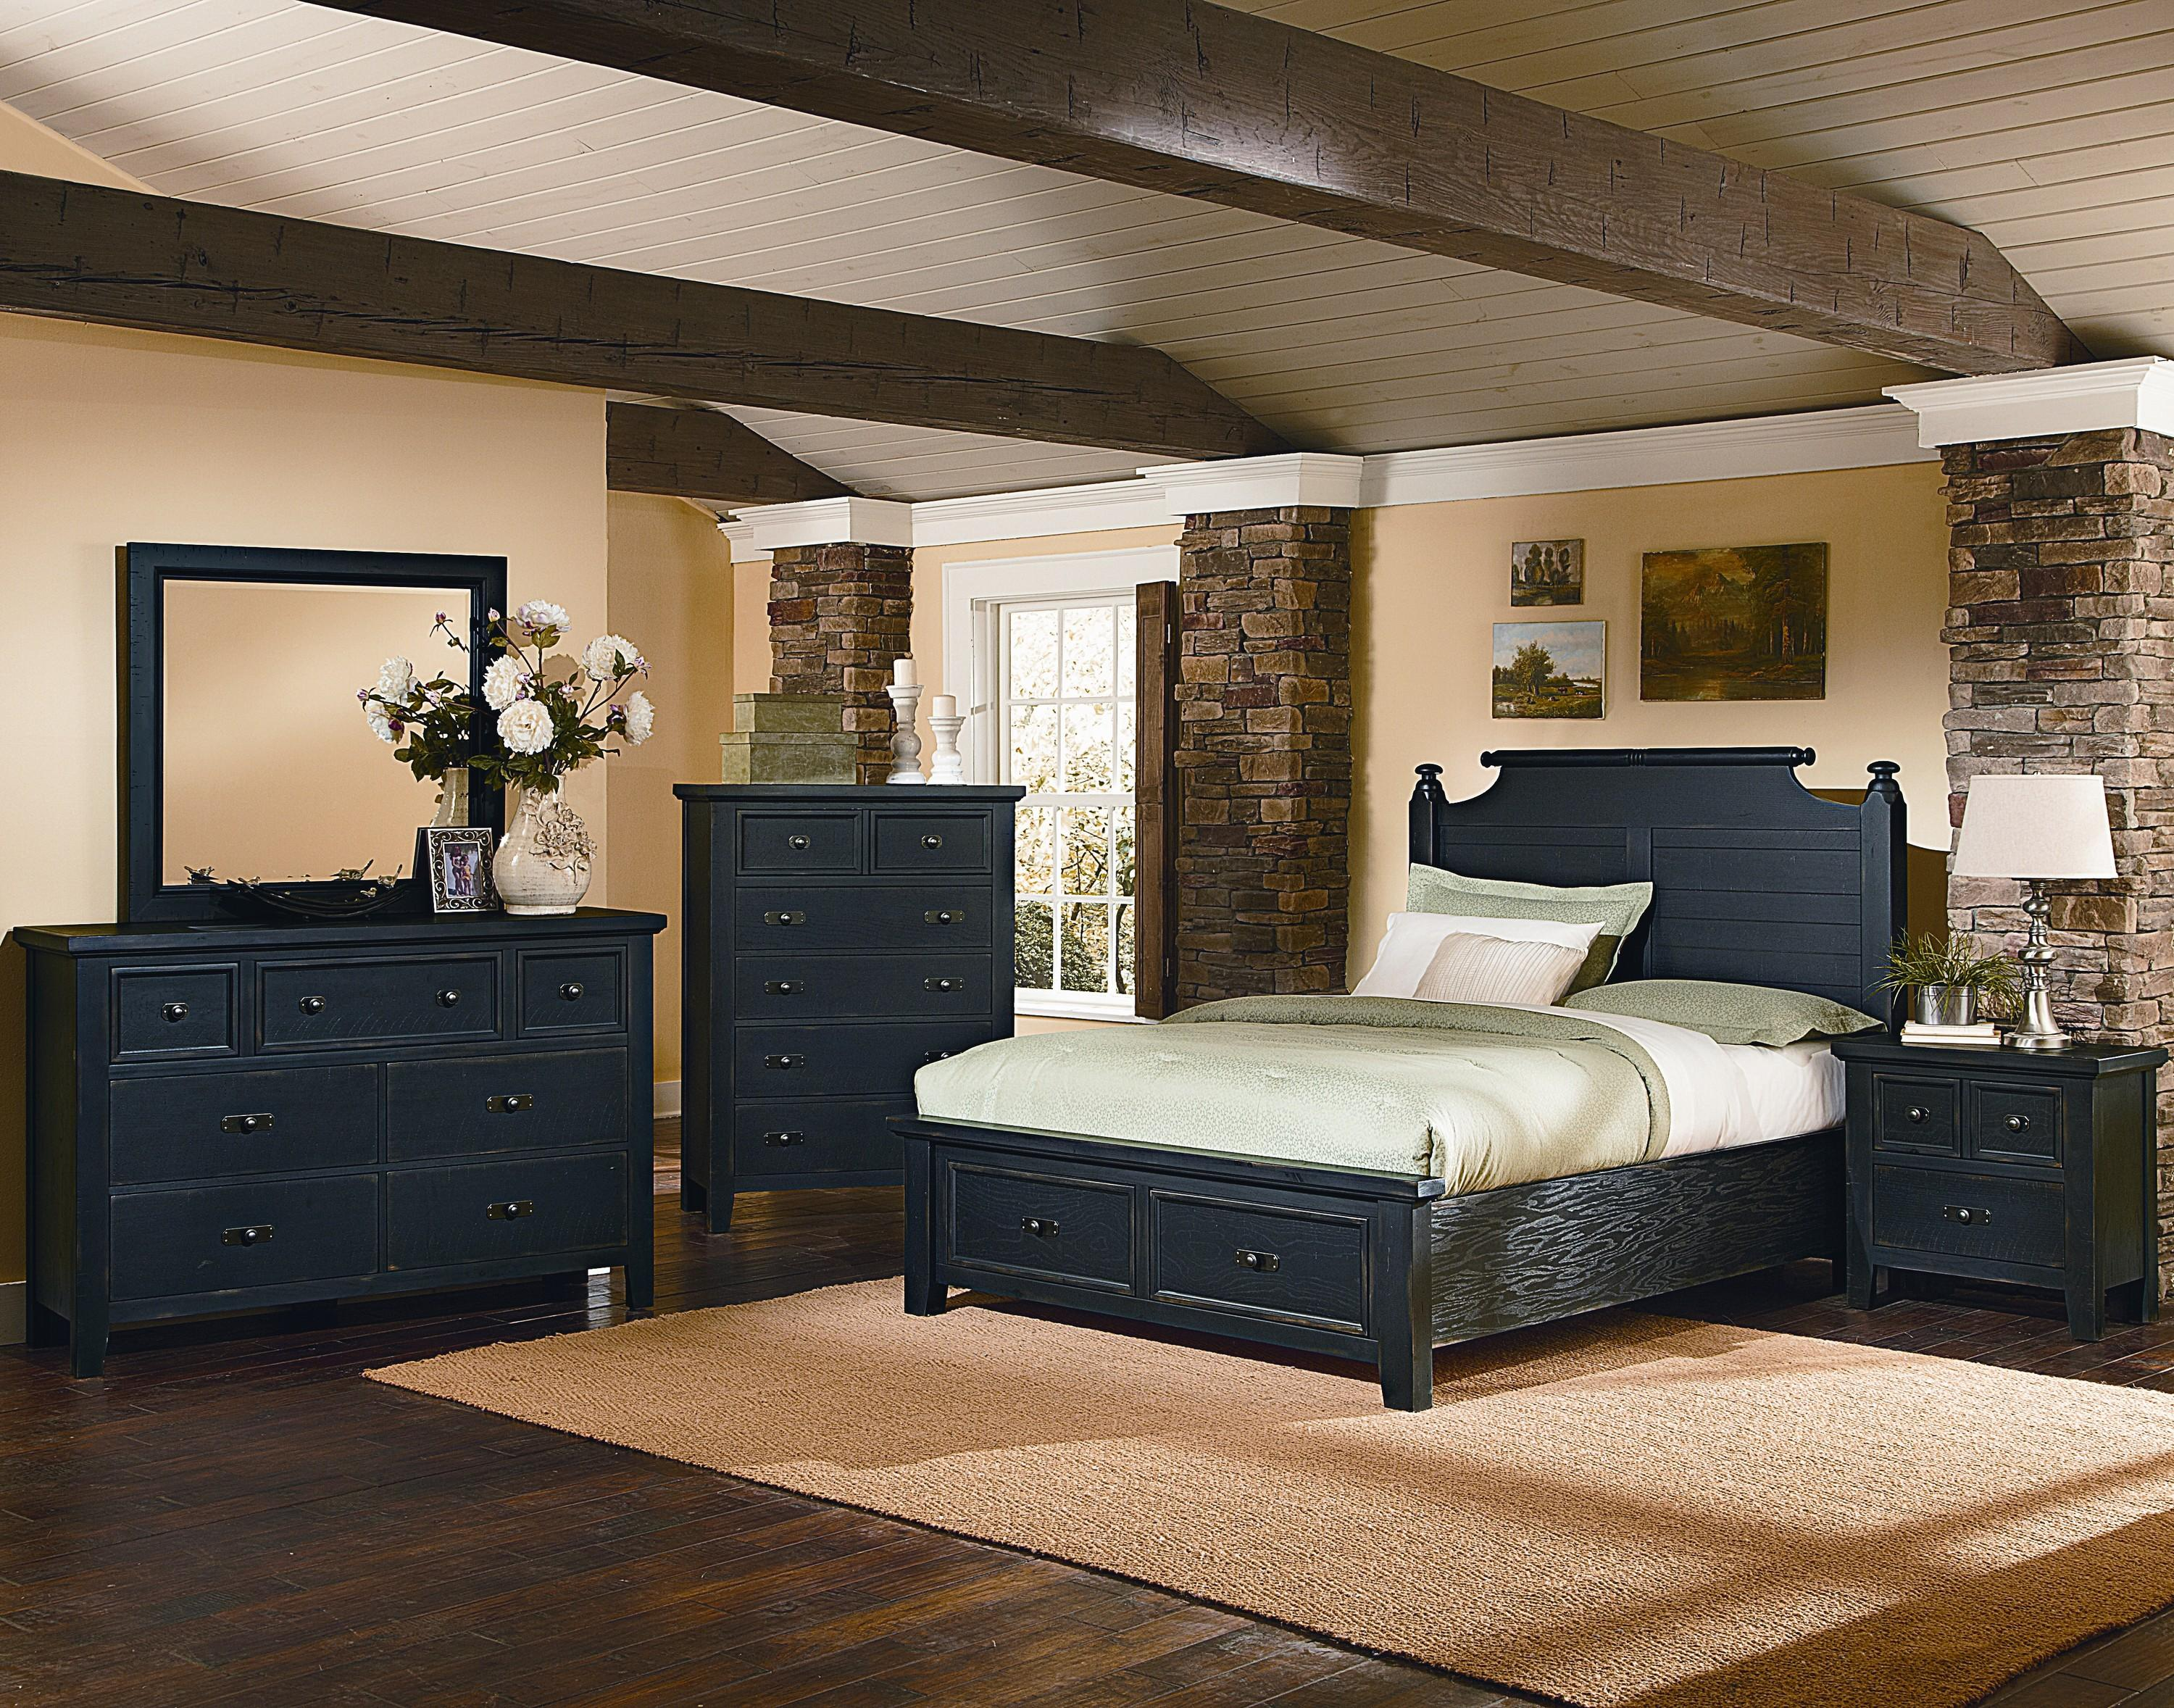 Vaughan Bassett Timber Mill King Bedroom Group - Item Number: BB56 K Bedroom Group 4